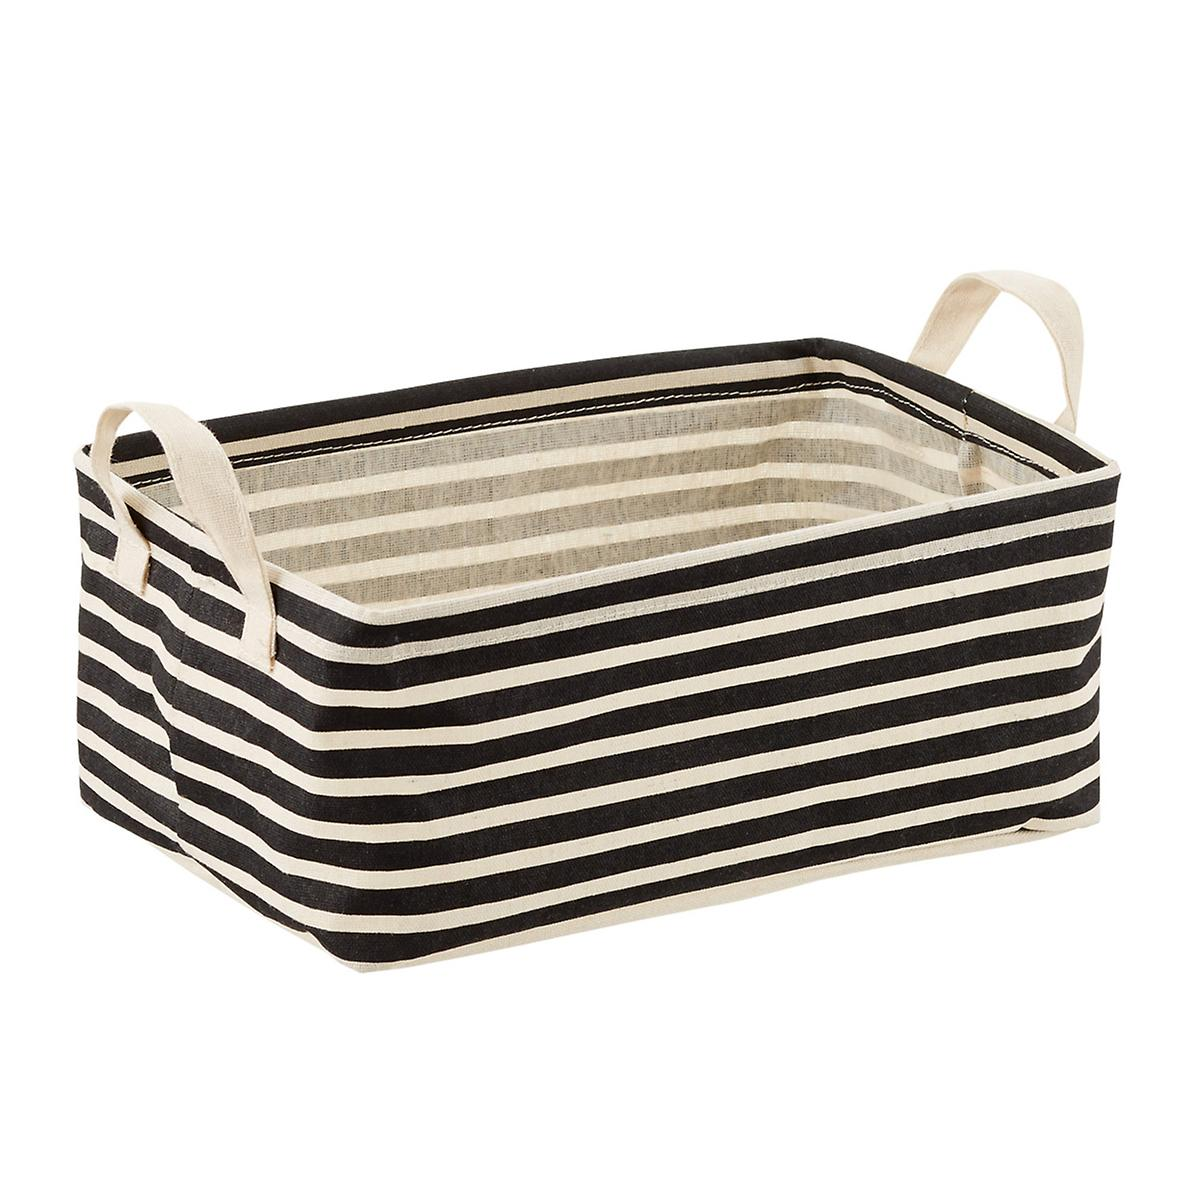 Black Stripe Fabric Storage Bins with Handles